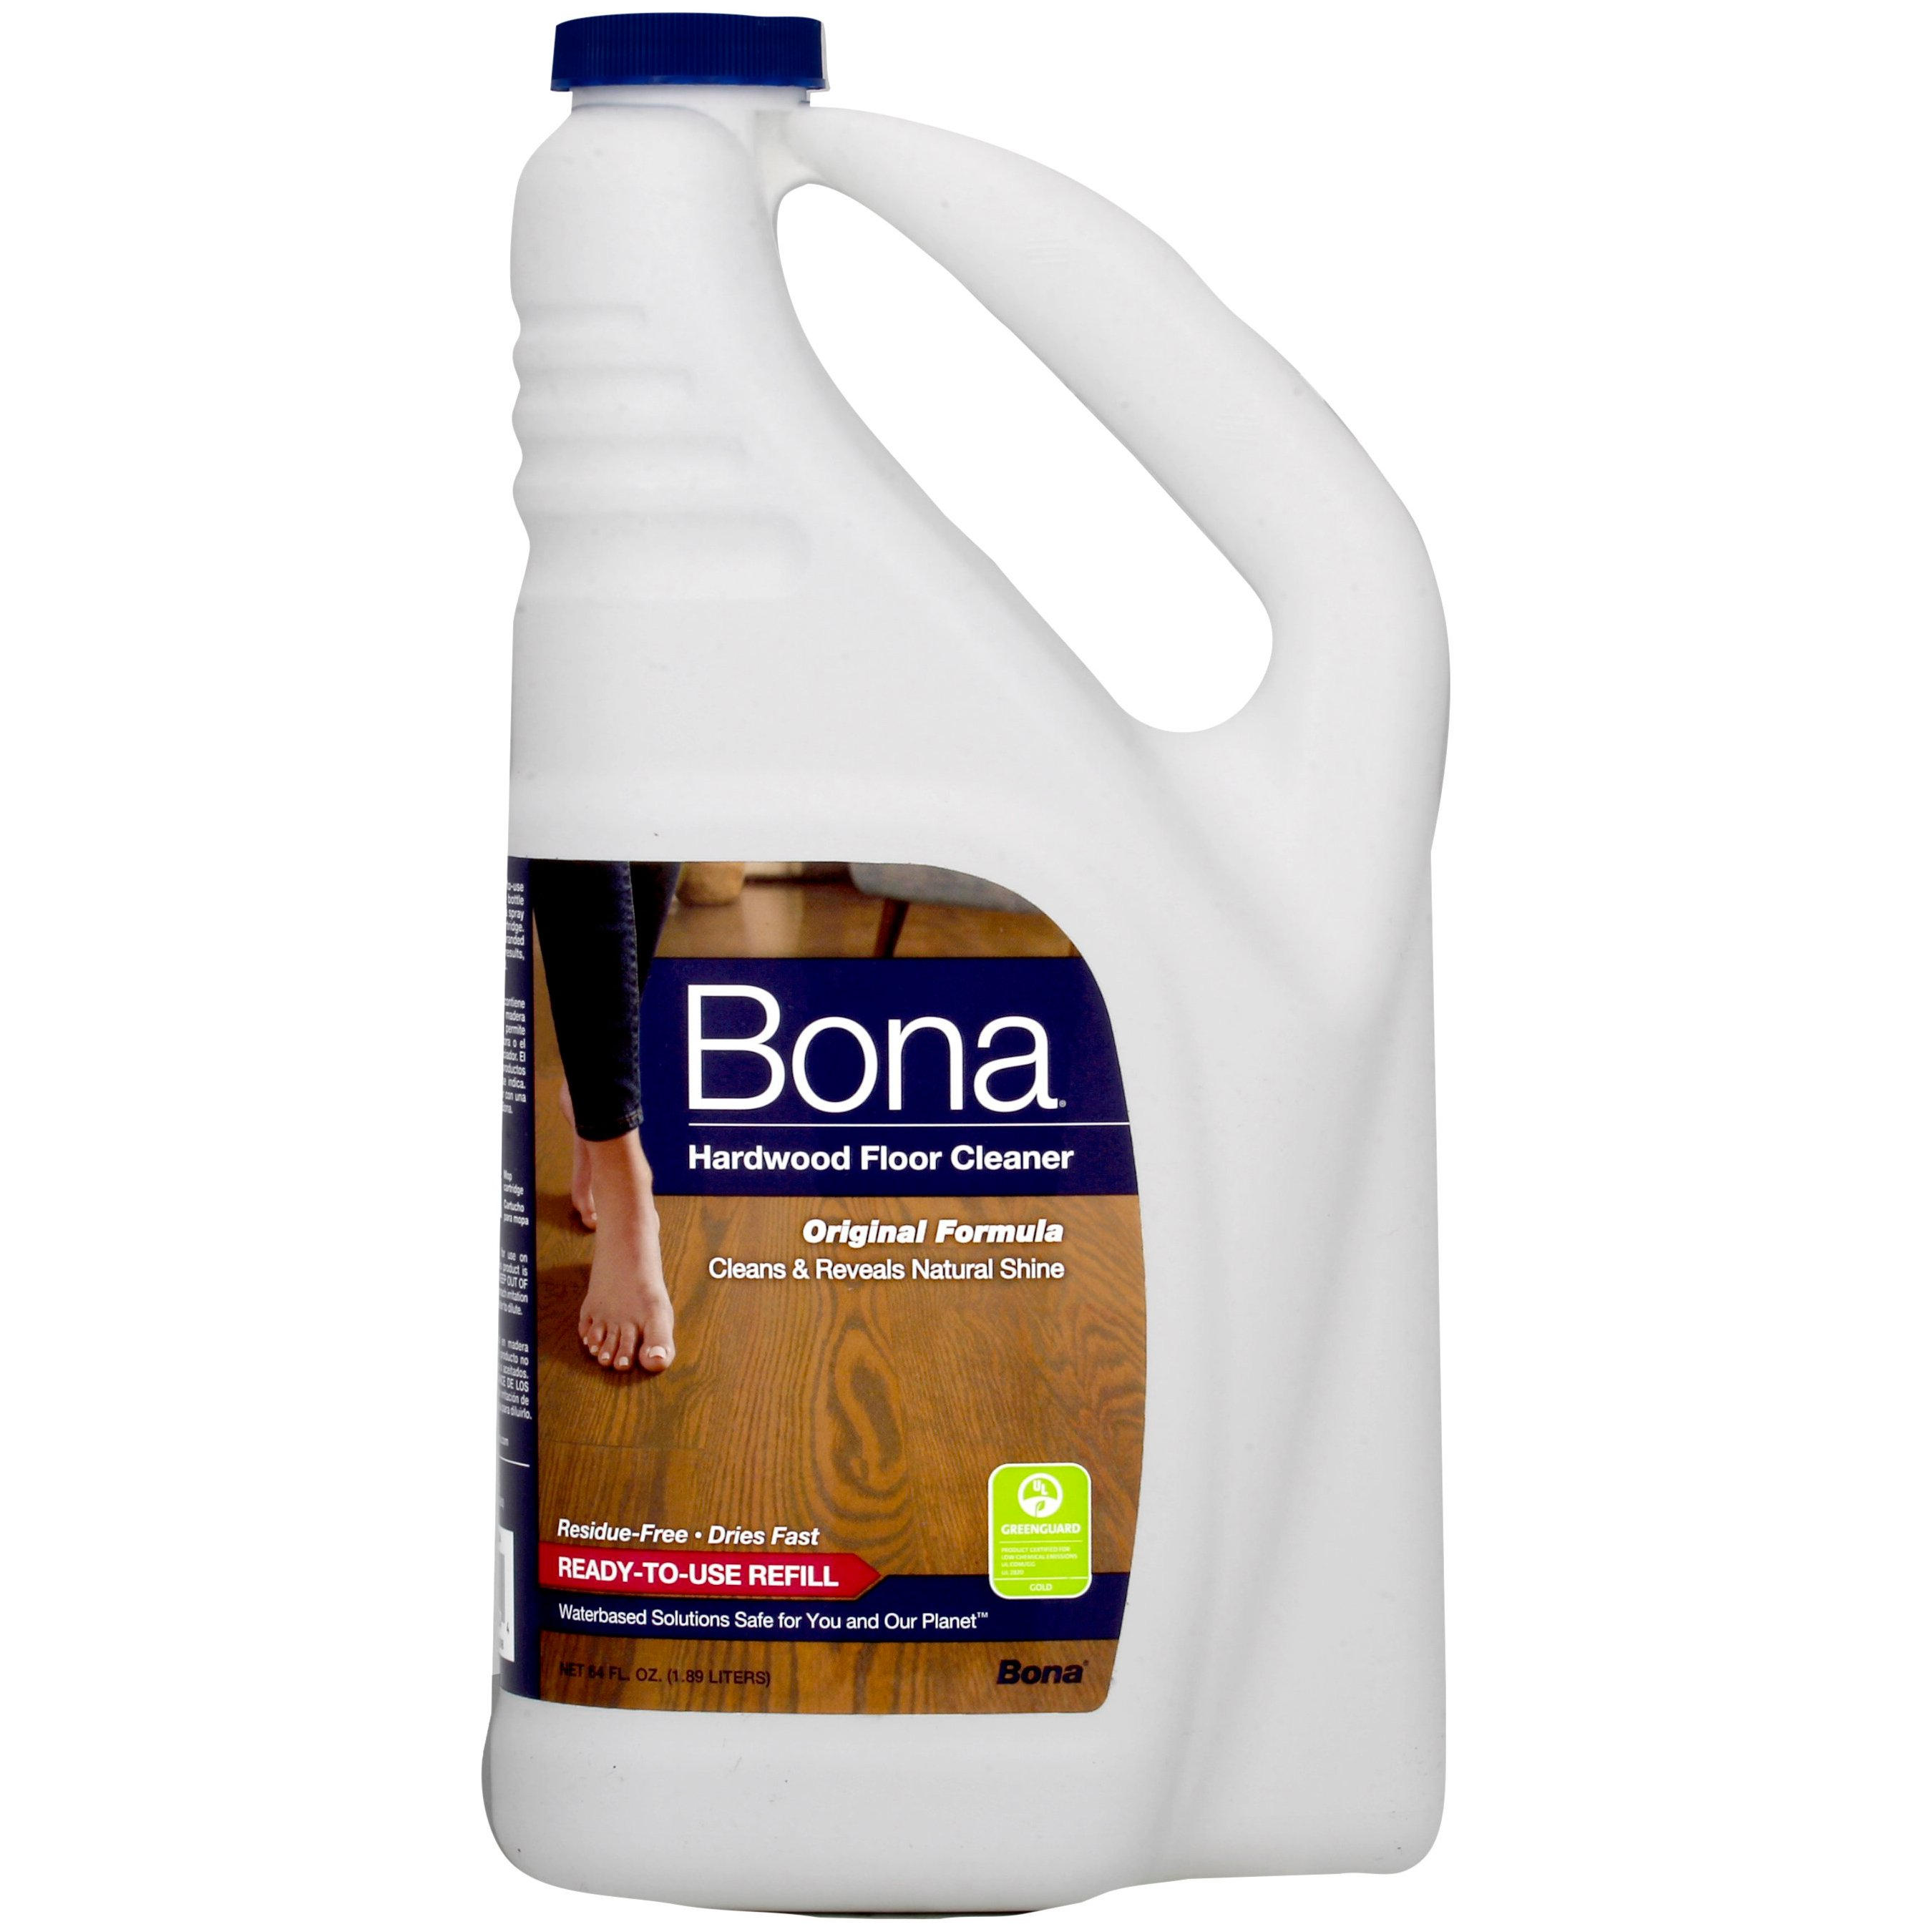 Bona wood floor cleaner refill gurus floor for Wood floor cleaner bona